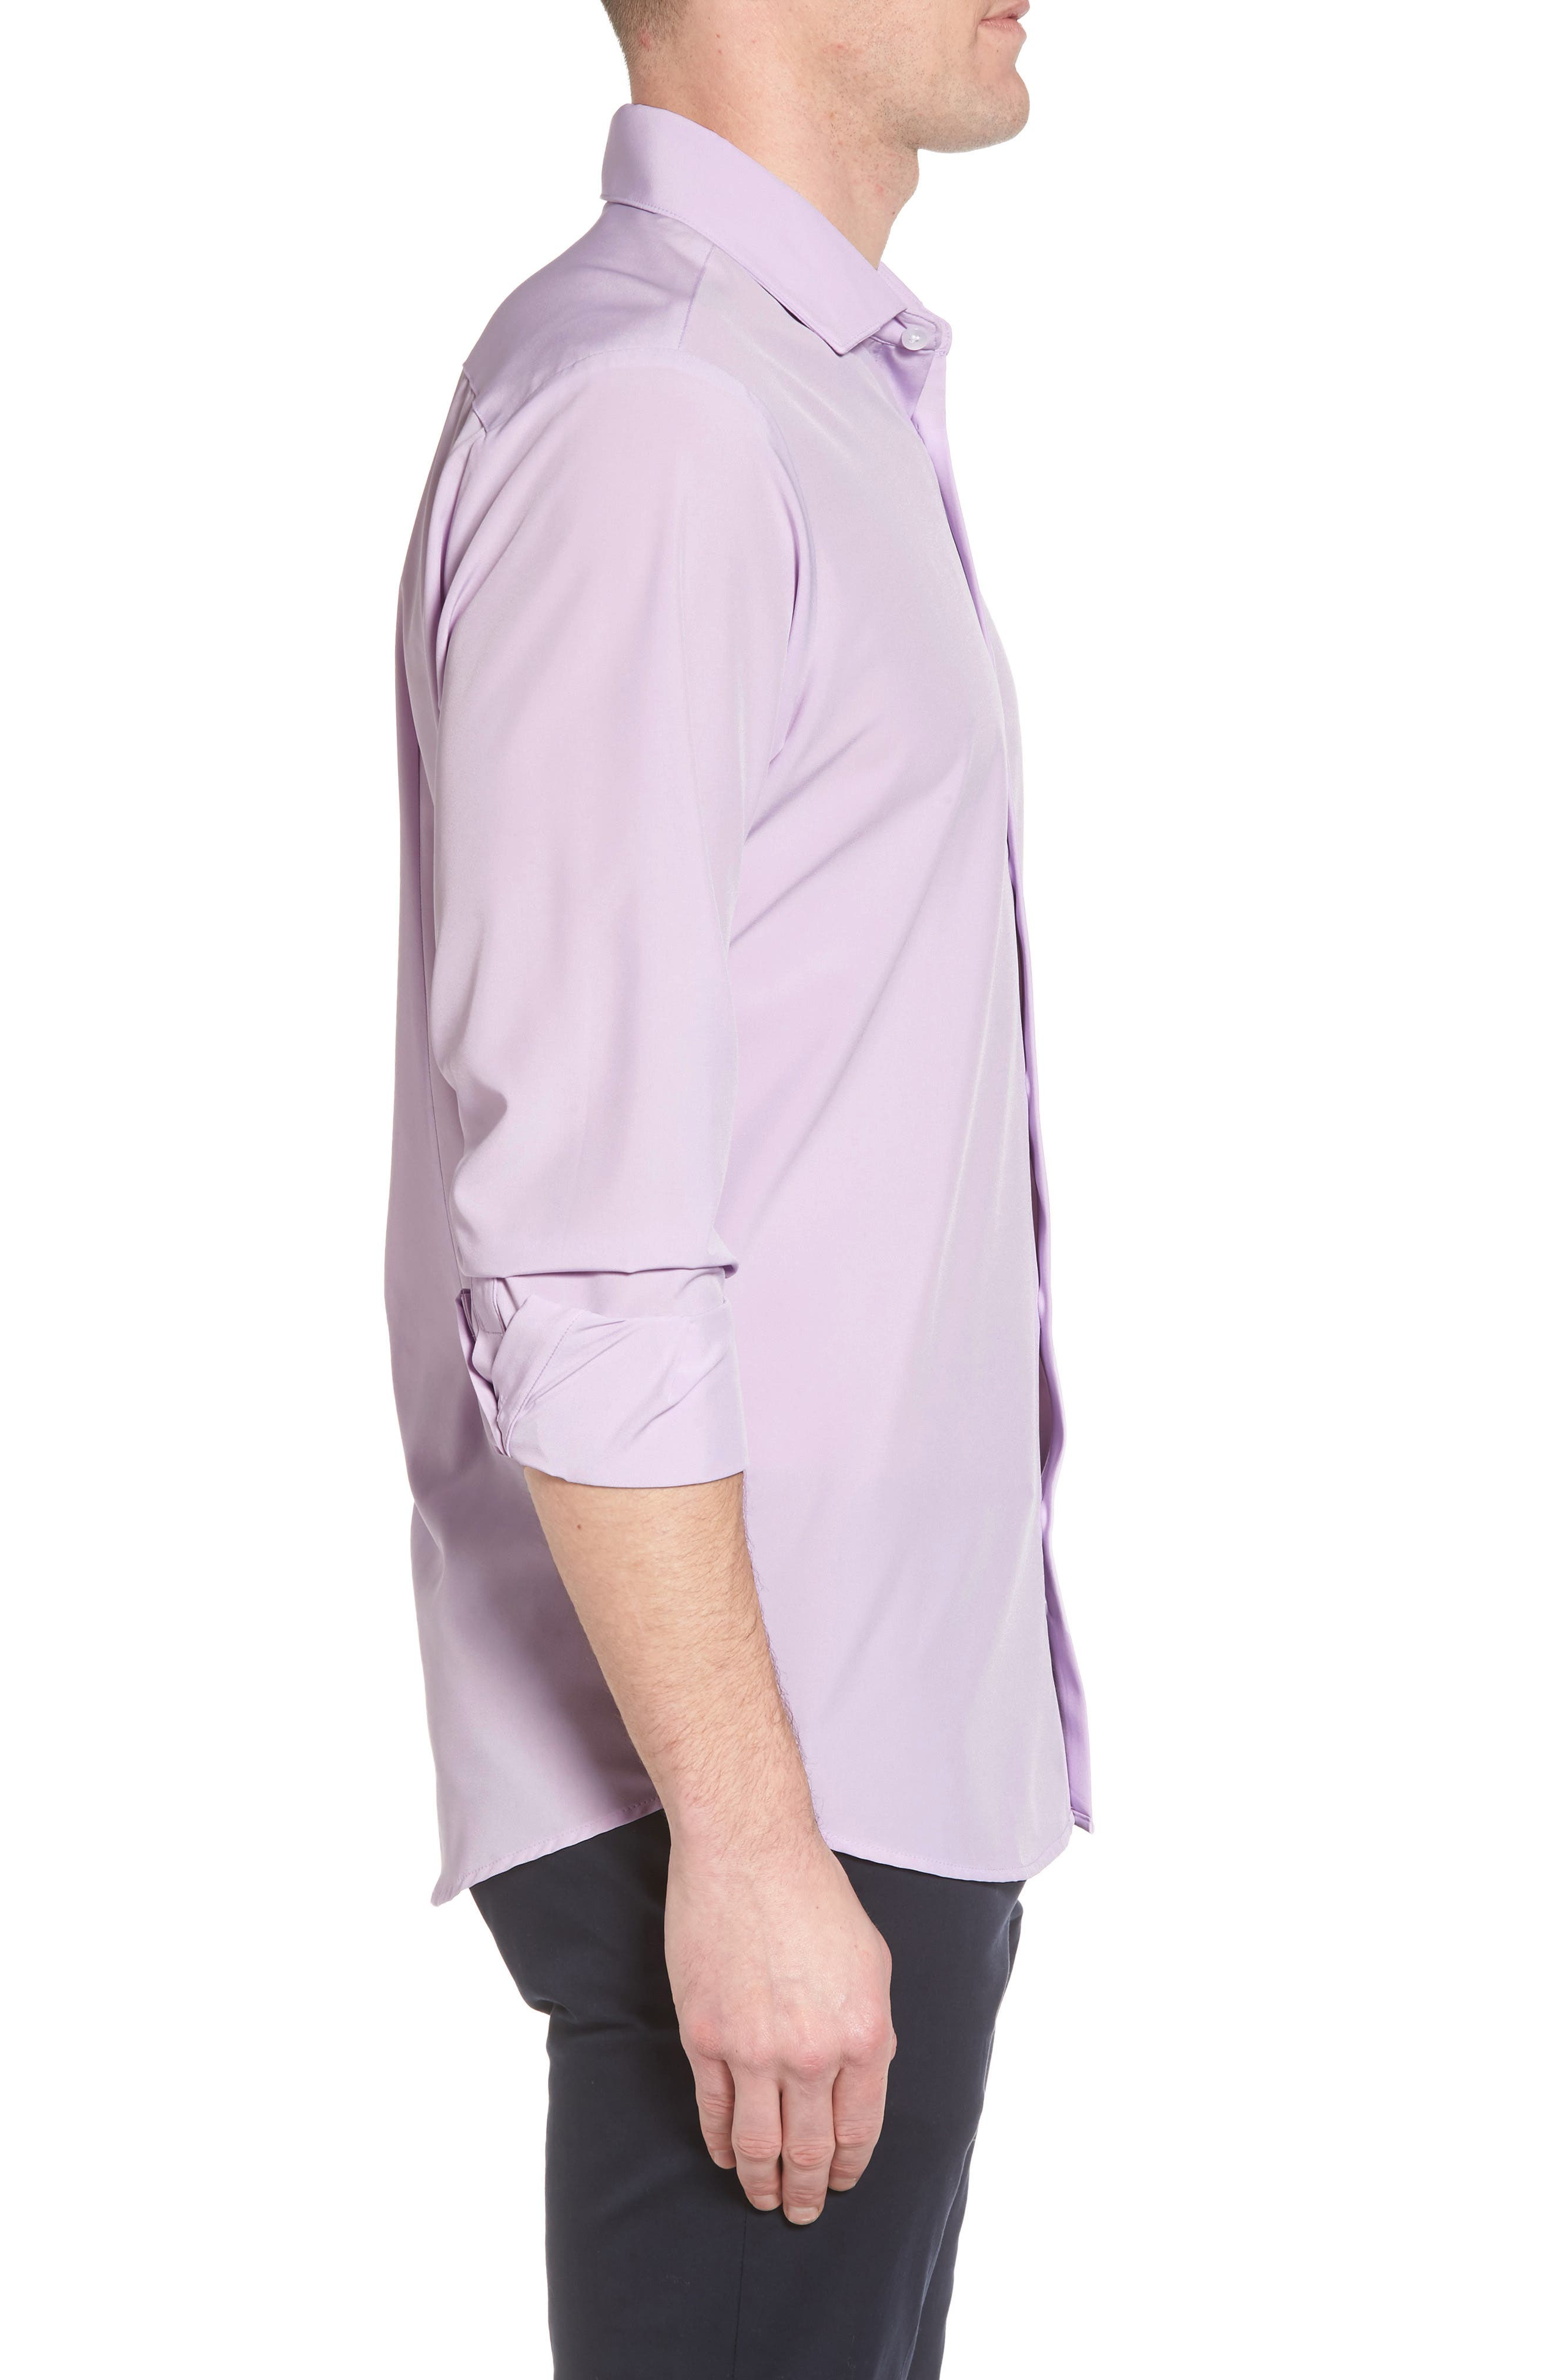 Henderson Performance Sport Shirt,                             Alternate thumbnail 3, color,                             Purple